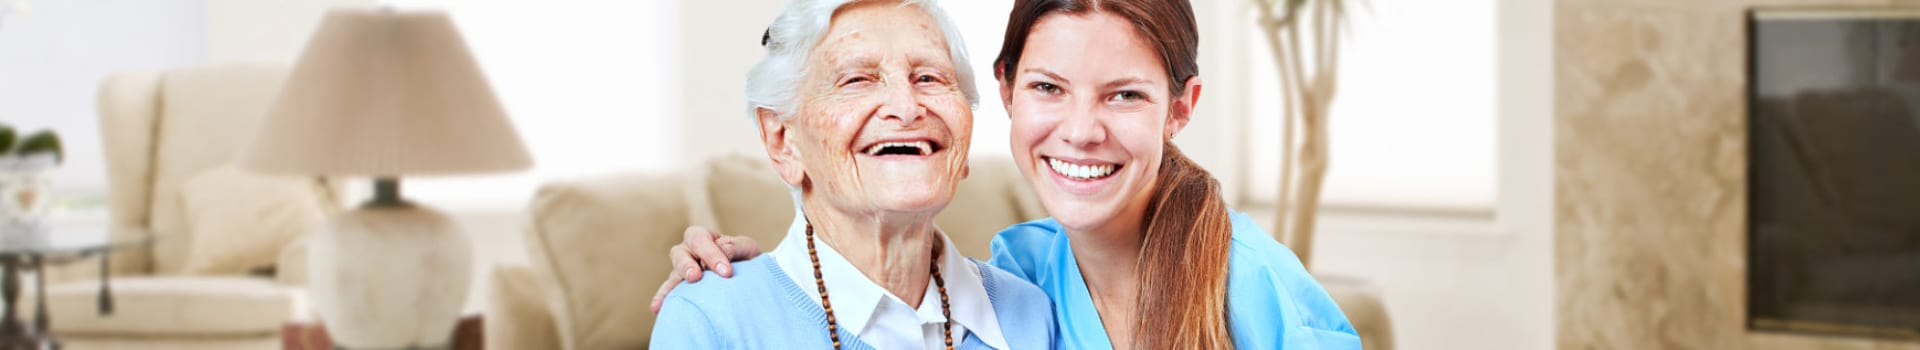 Nursing assistance and laughing happy senior citizen